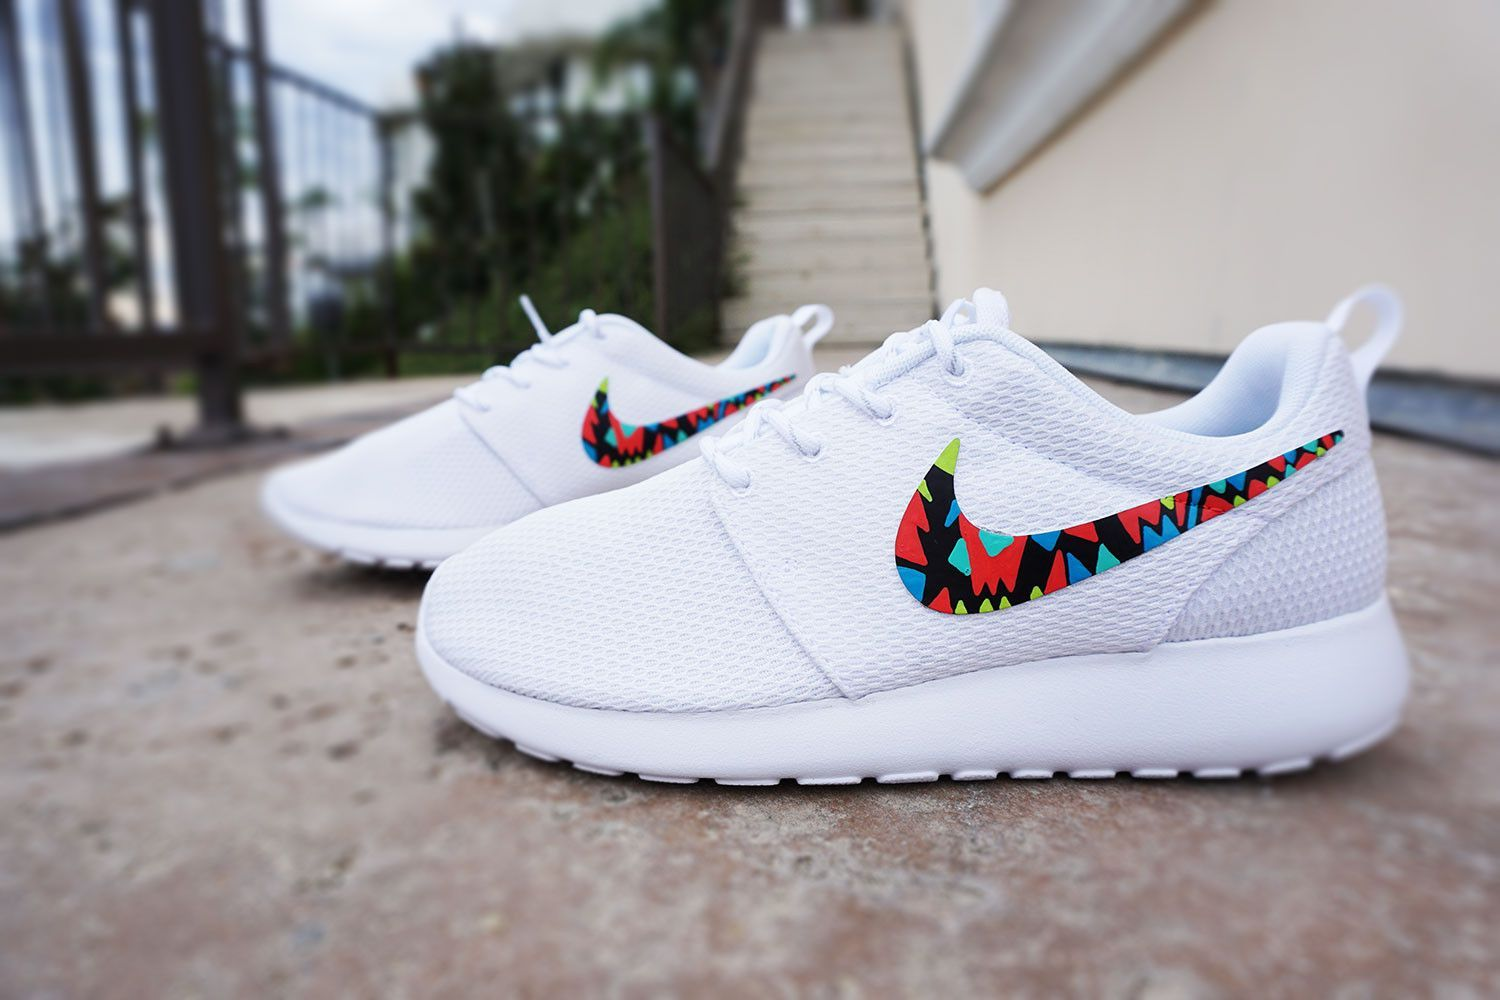 timeless design 40d2e a0f3c Womens Custom Nike Roshe Run sneakers, White on White nike roshe, trendy,  stylish design, tribal pattern, All white shoes, lime, blue, kiwi colors